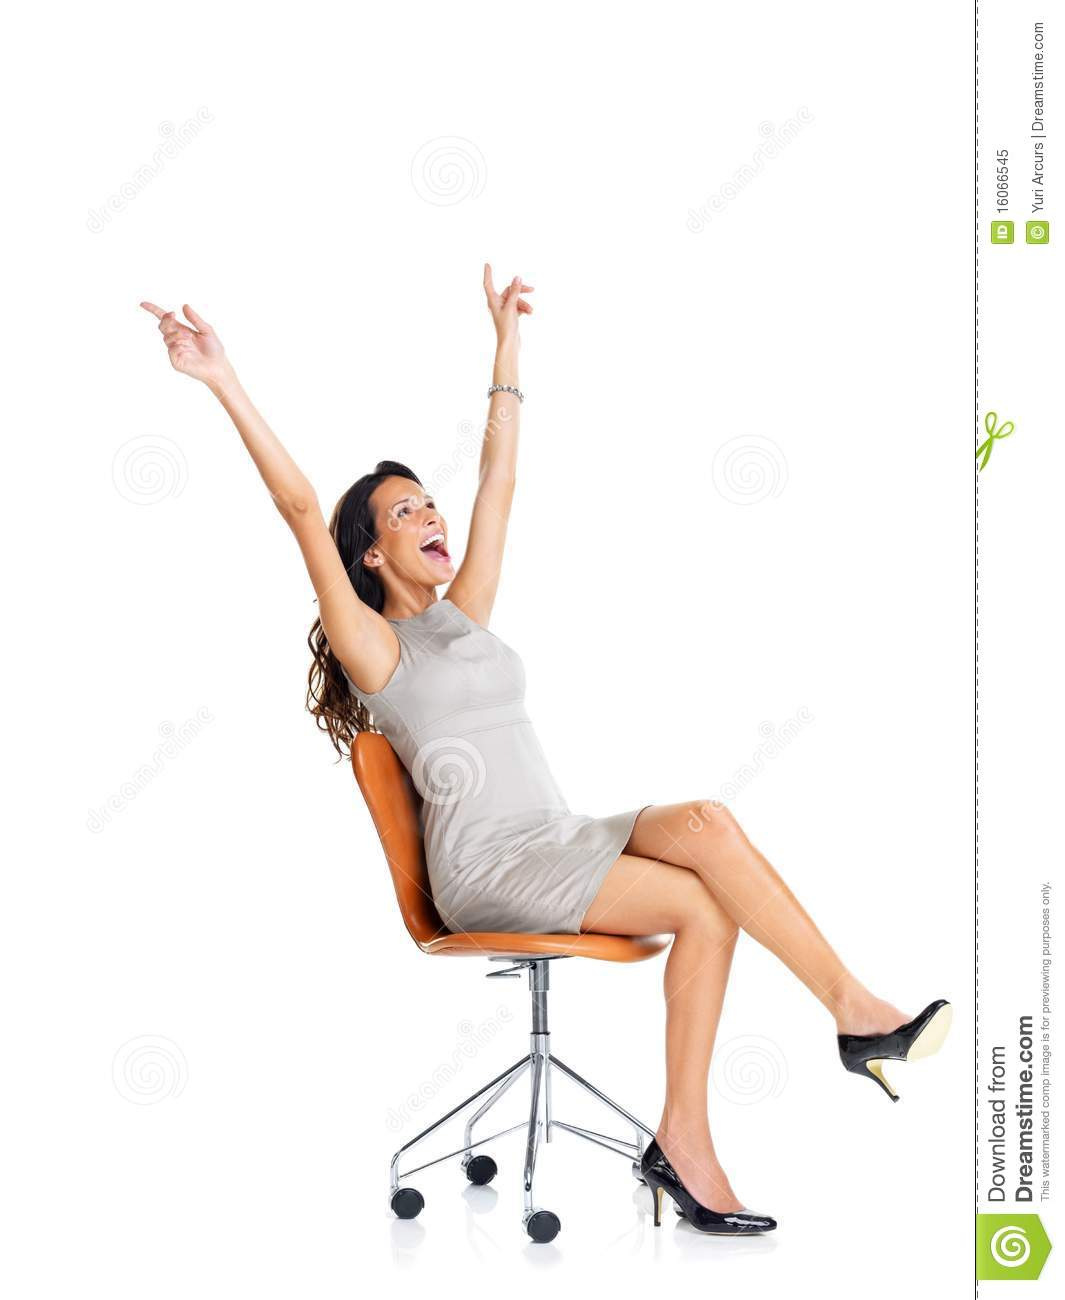 woman sitting in chair table with chairs inside royalty free stock photo excited young on